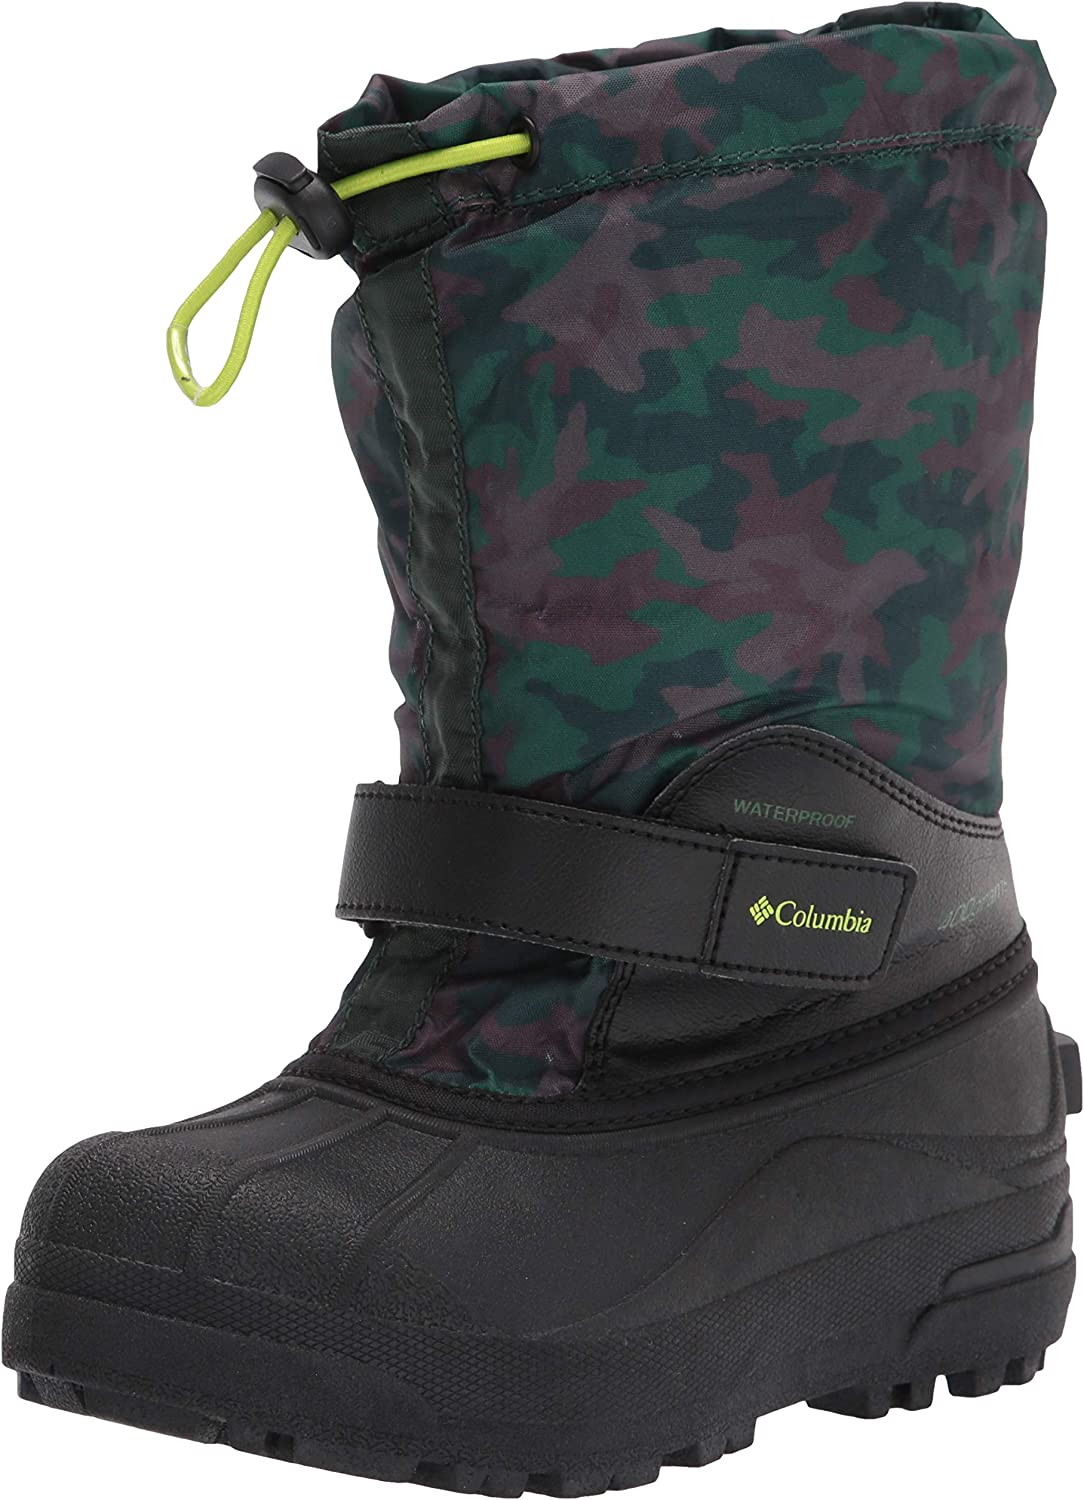 Columbia Unisex-Child Powderbug Max 74% OFF Forty Snow Print New product! New type Boot